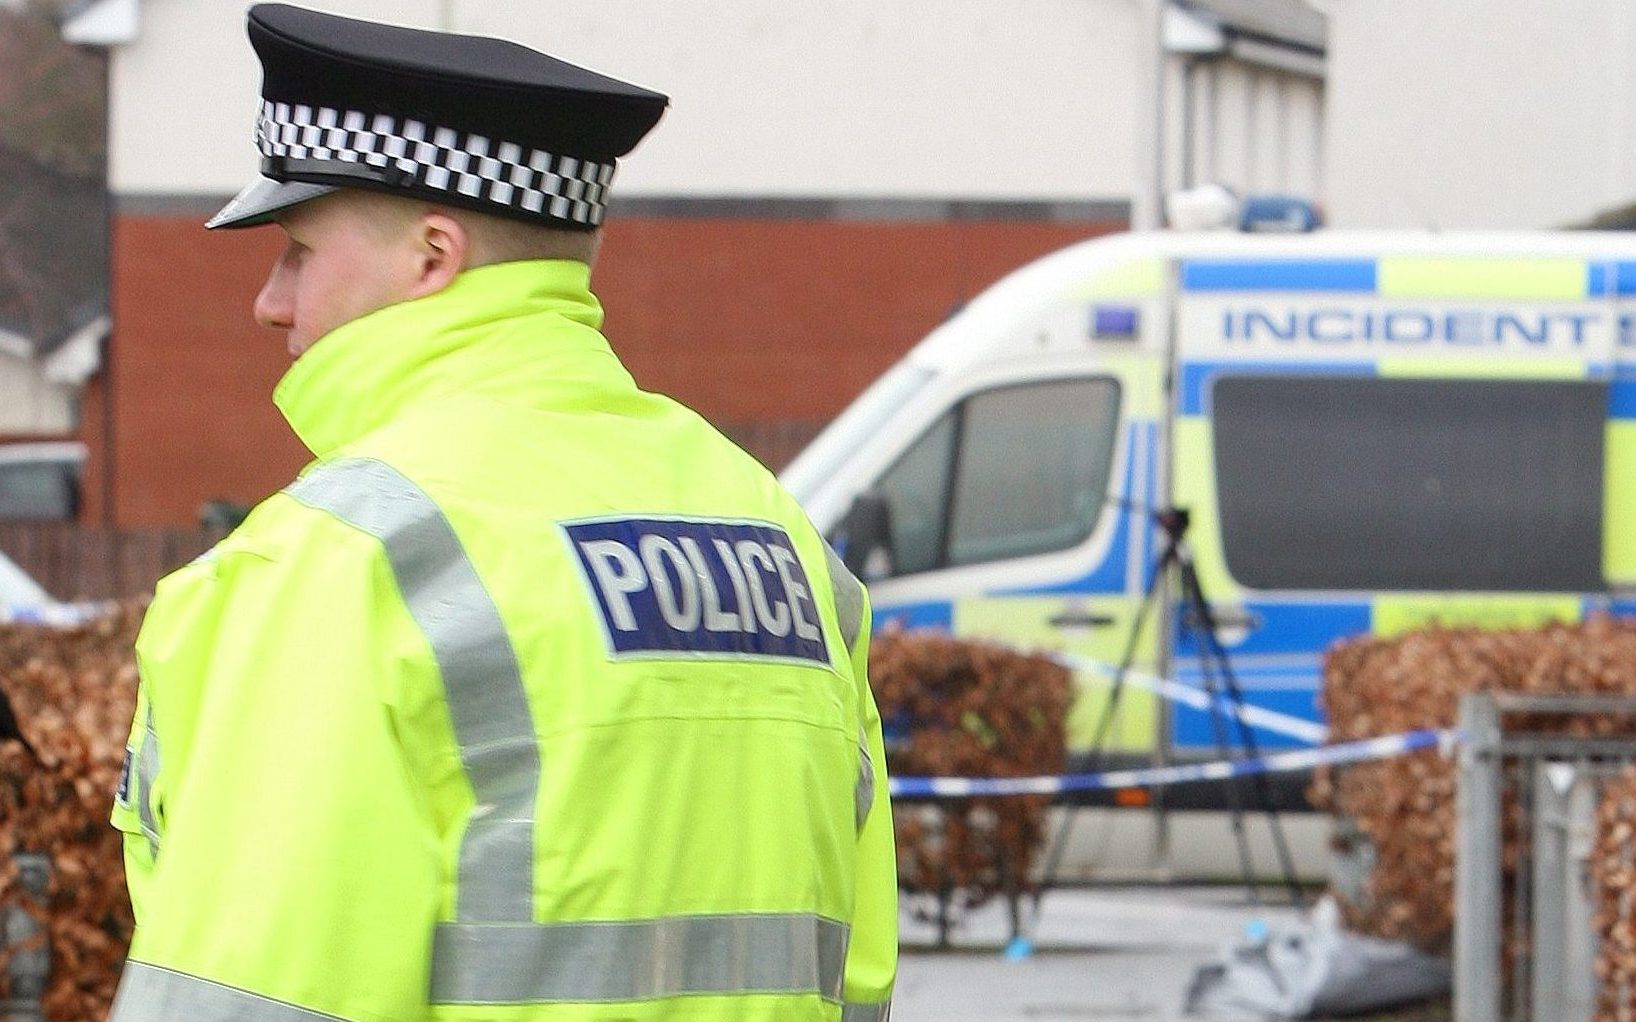 Police activity in Dunnock Park in the Muirton area of Perth on Saturday morning.